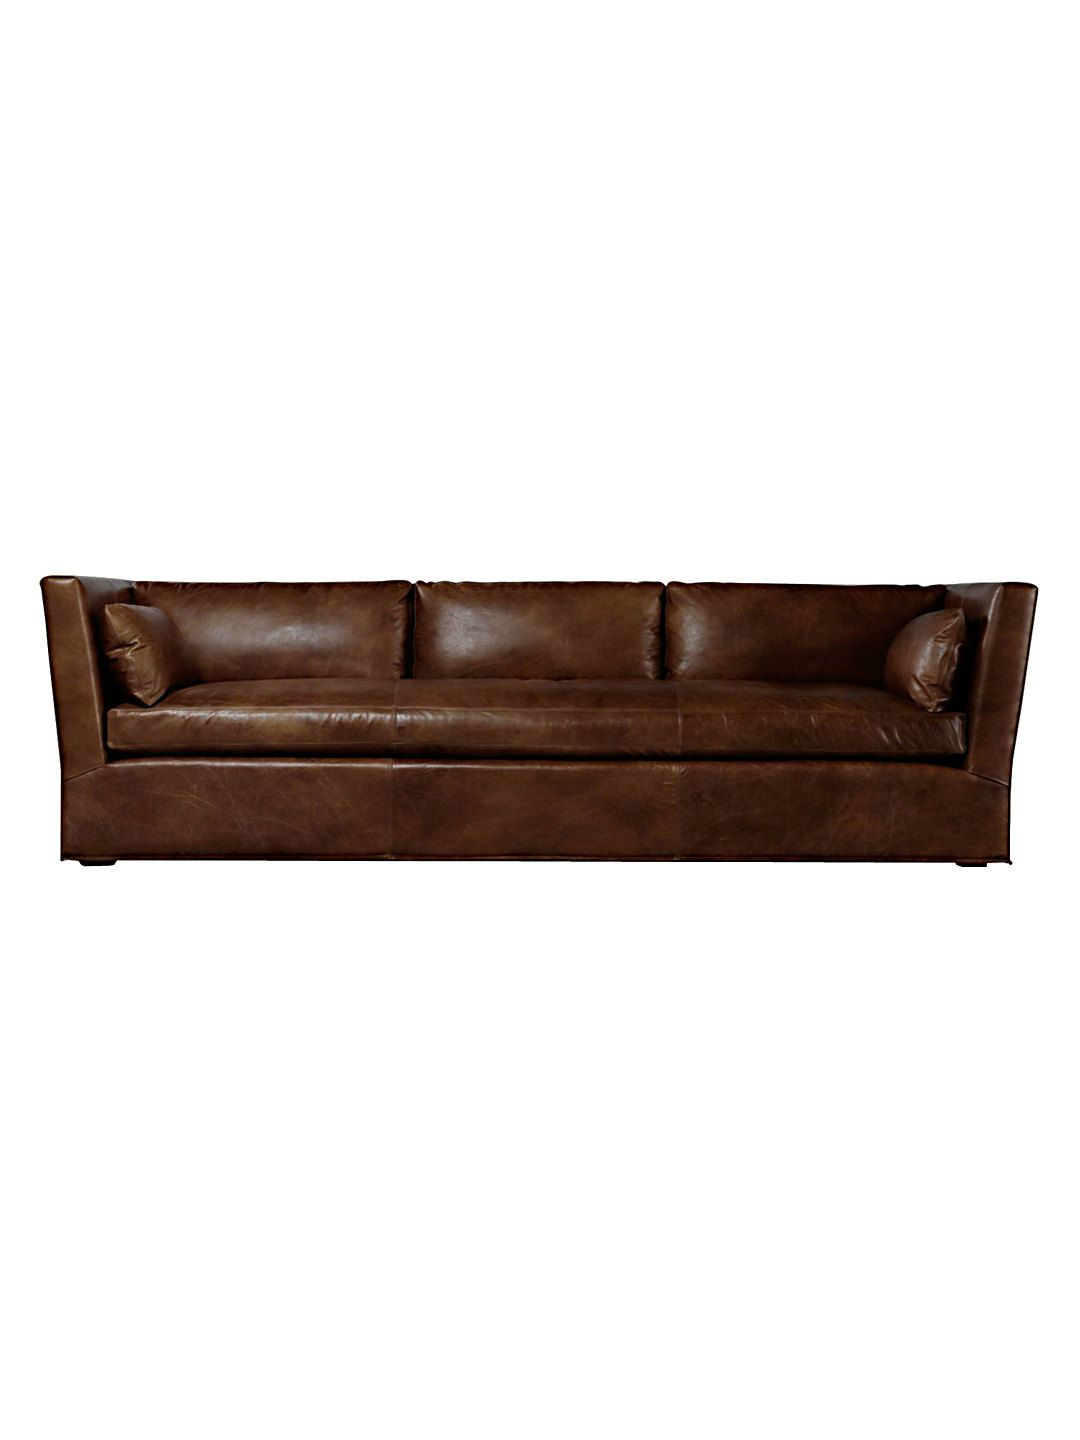 Astounding Luxe Morton Sofa By Tag By Tandem Arbor At Gilt My Palace Lamtechconsult Wood Chair Design Ideas Lamtechconsultcom